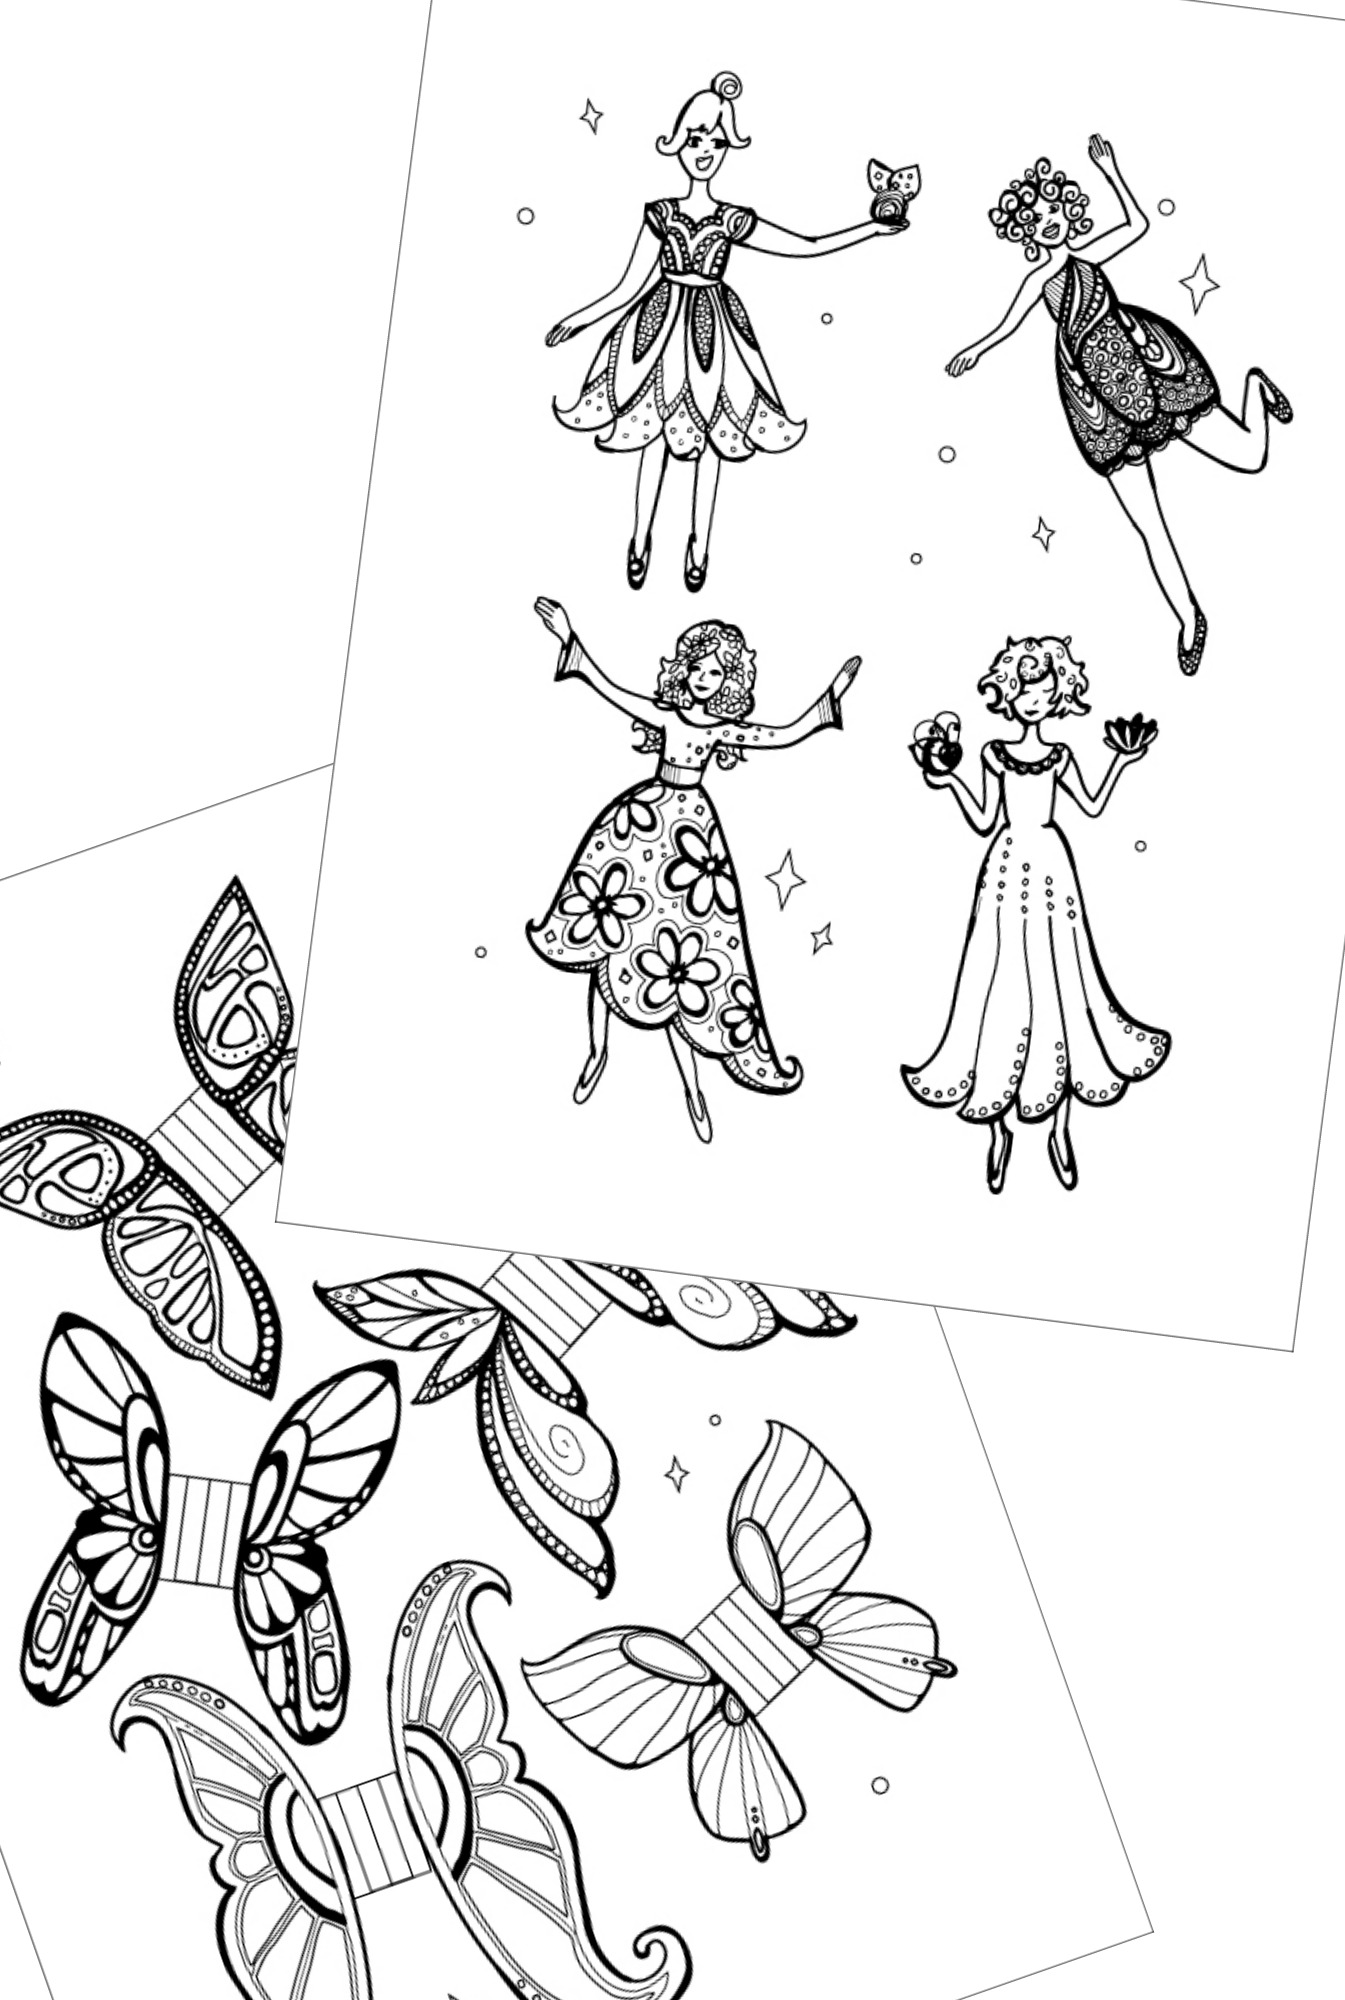 Printable 'Fairies and Wings' Coloring Pages You Can Cut Out